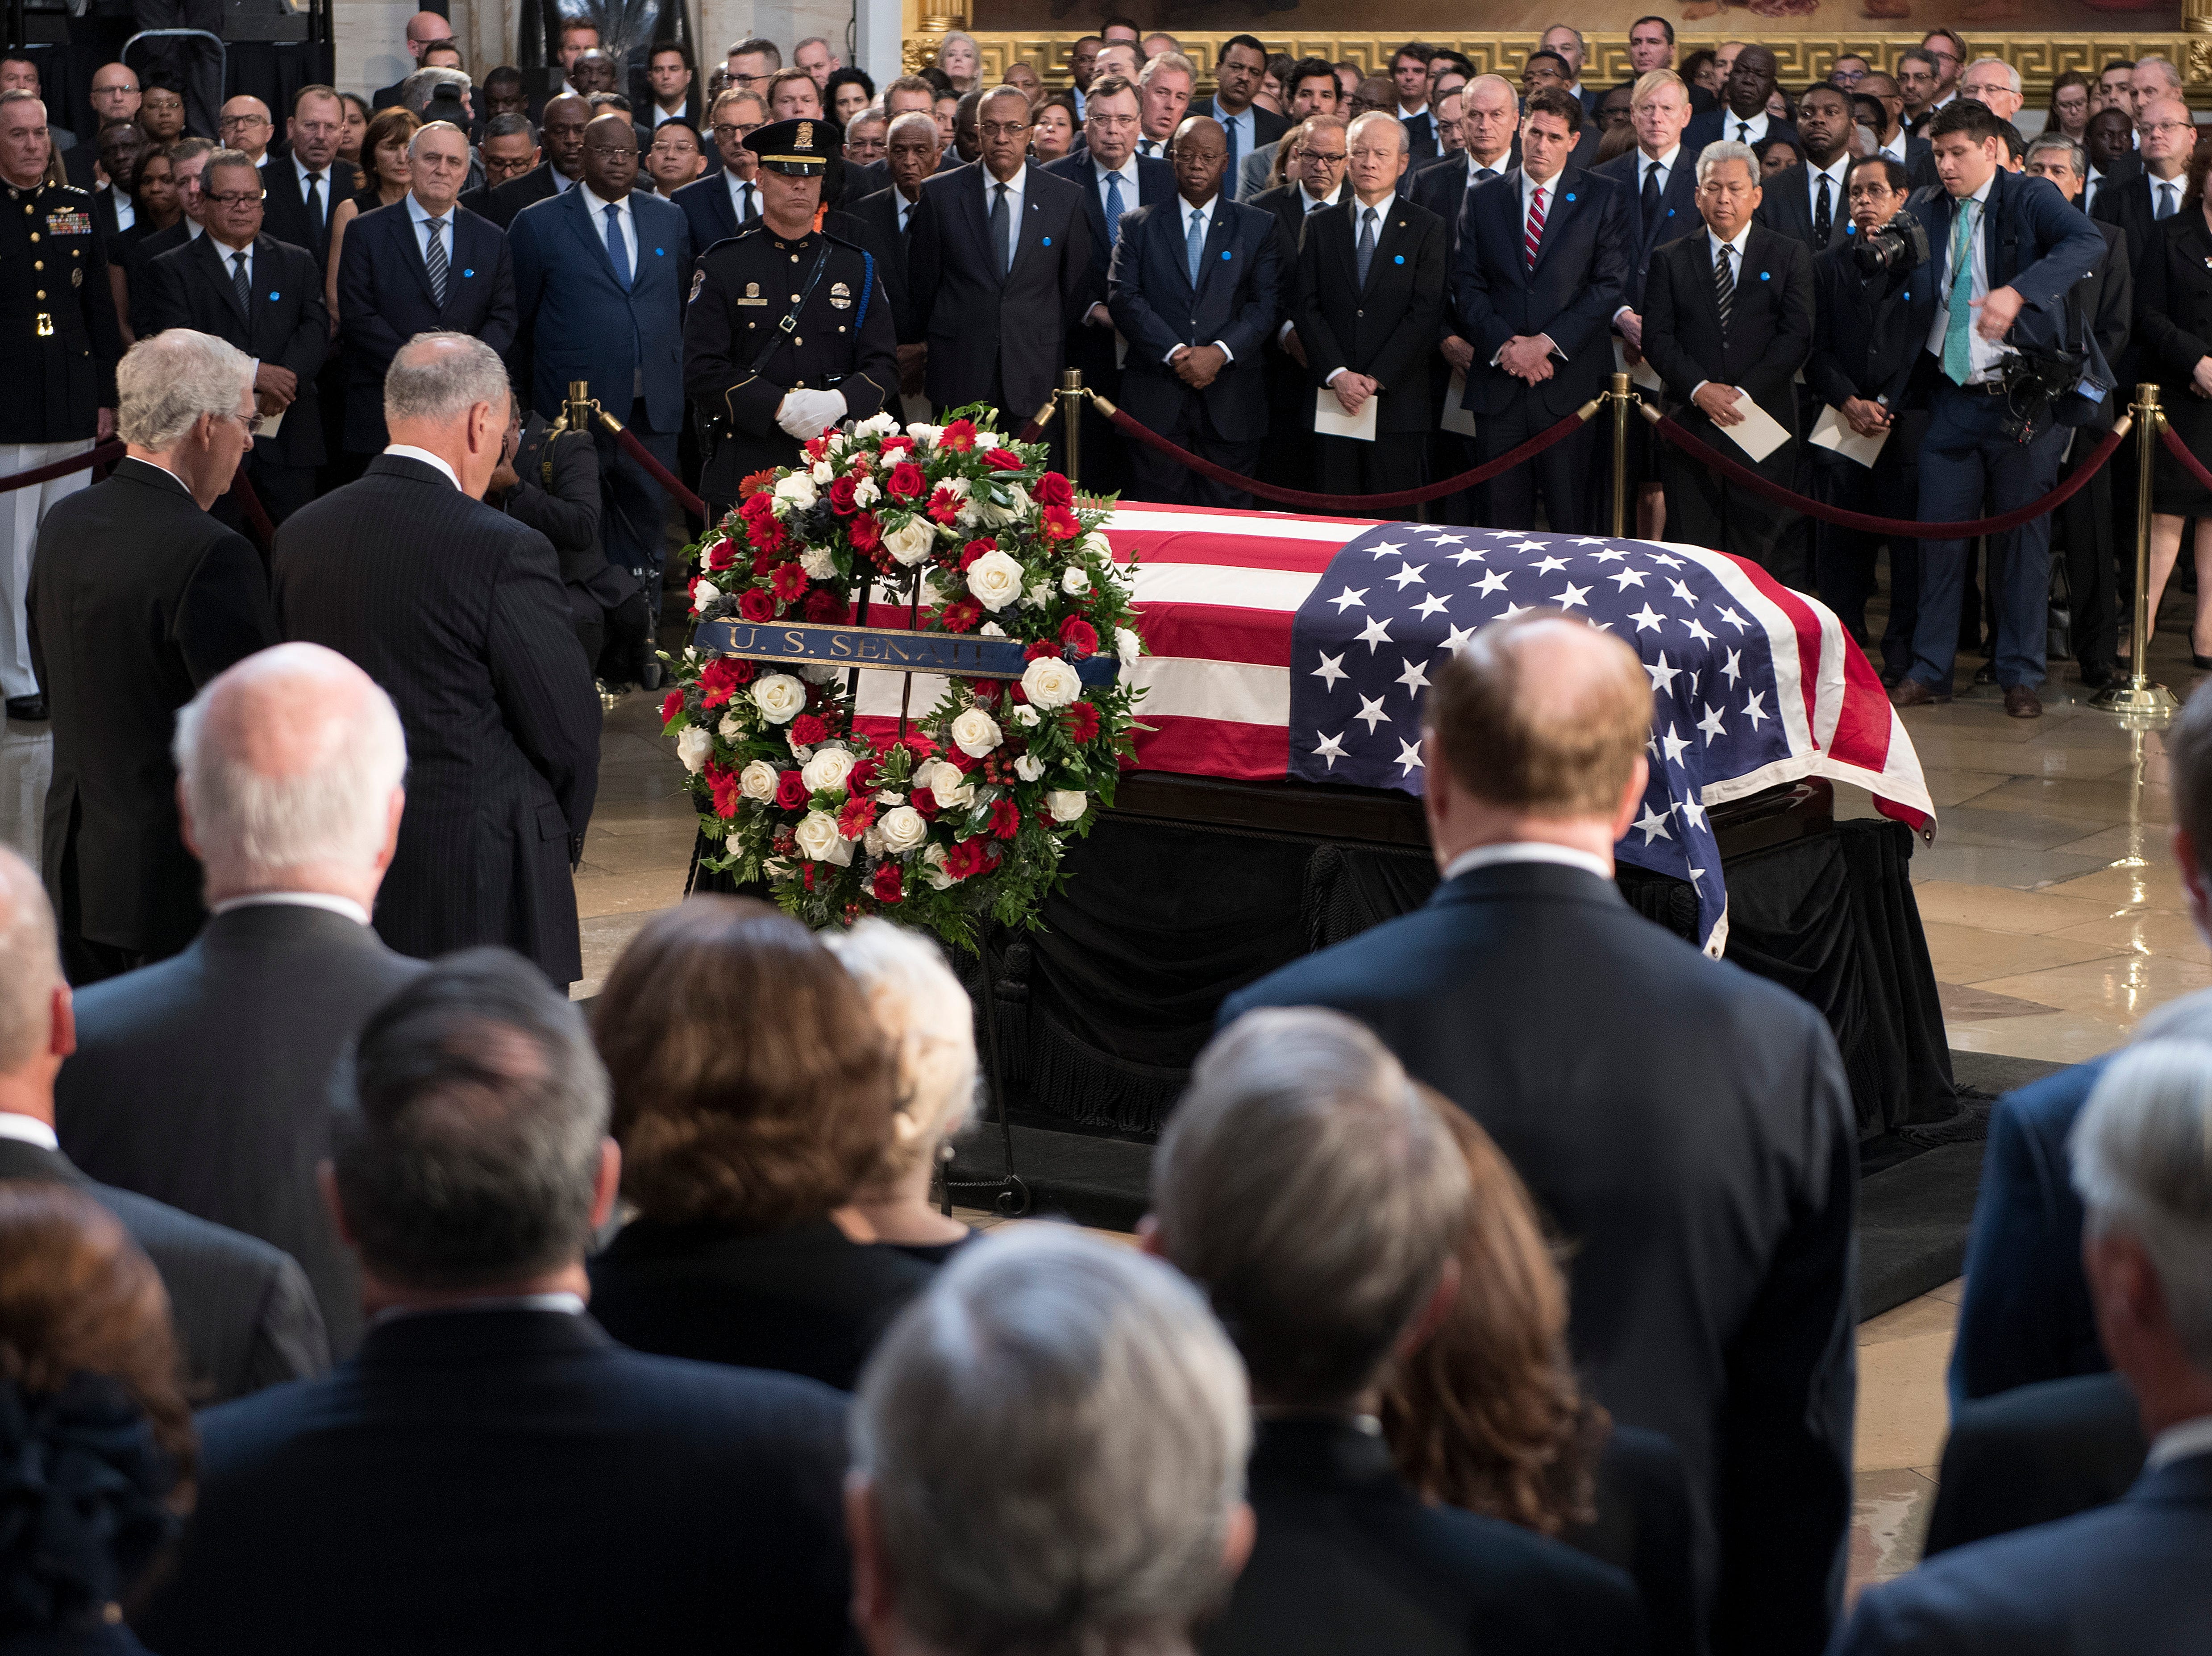 Senate Majority Leader Mitch McConnell, left, and Senate Minority Leader Chuck Schumer, pay their respects the the flag-draped coffin holding the remains of Sen. John McCain, R-Ariz., in the U.S. Capitol, Friday, Aug. 31, 2018 in Washington. (Jim Watson/Pool photo via AP)